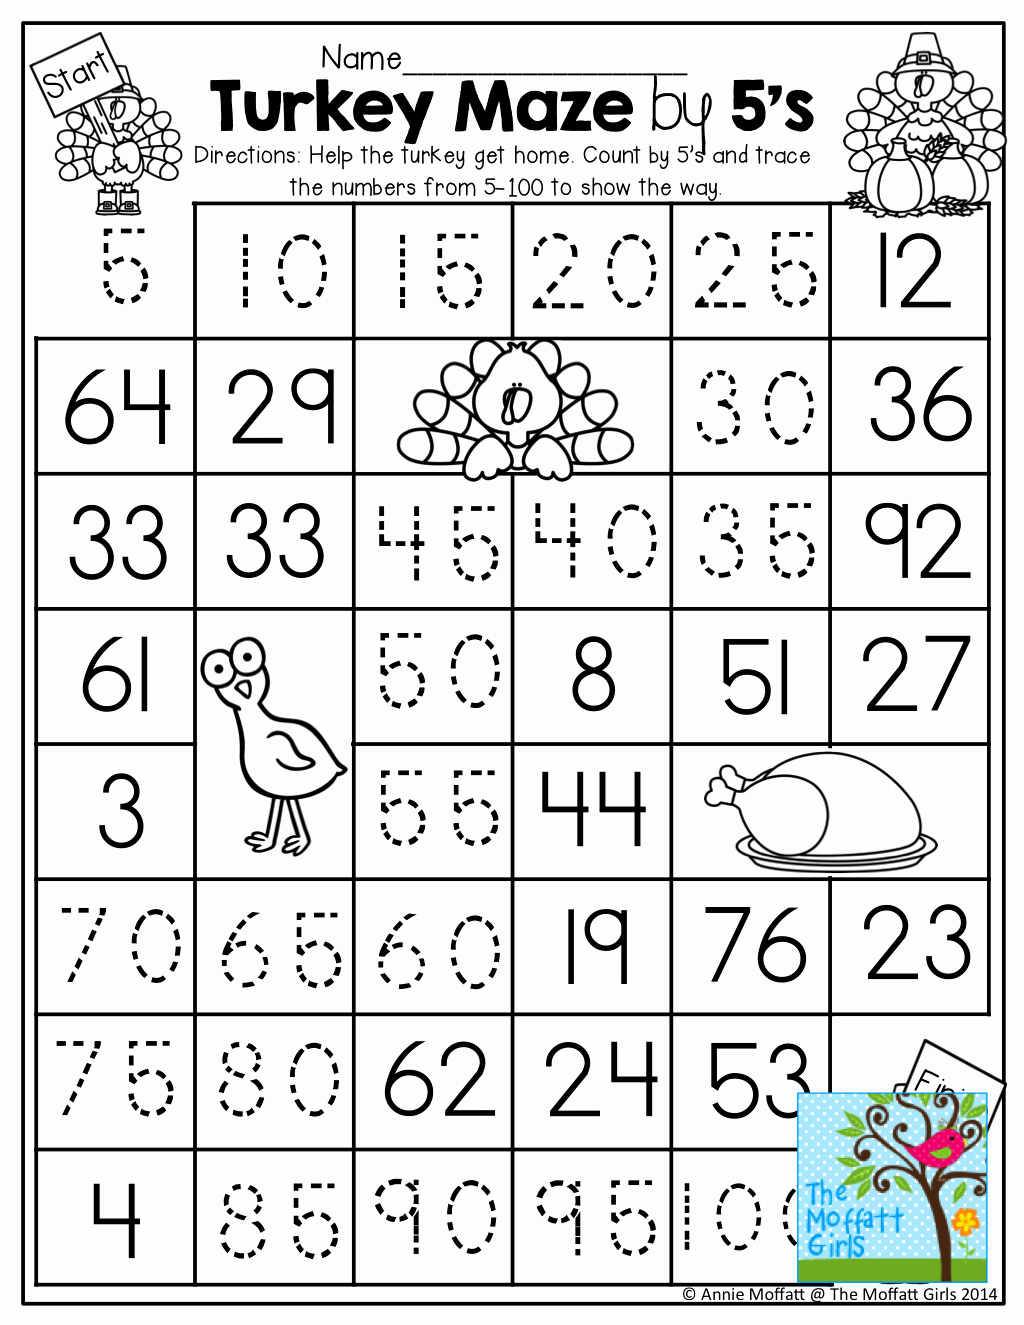 Counting by 5s Worksheet Elegant Count by 5 S Worksheet by Tracing the Path From the Turkey